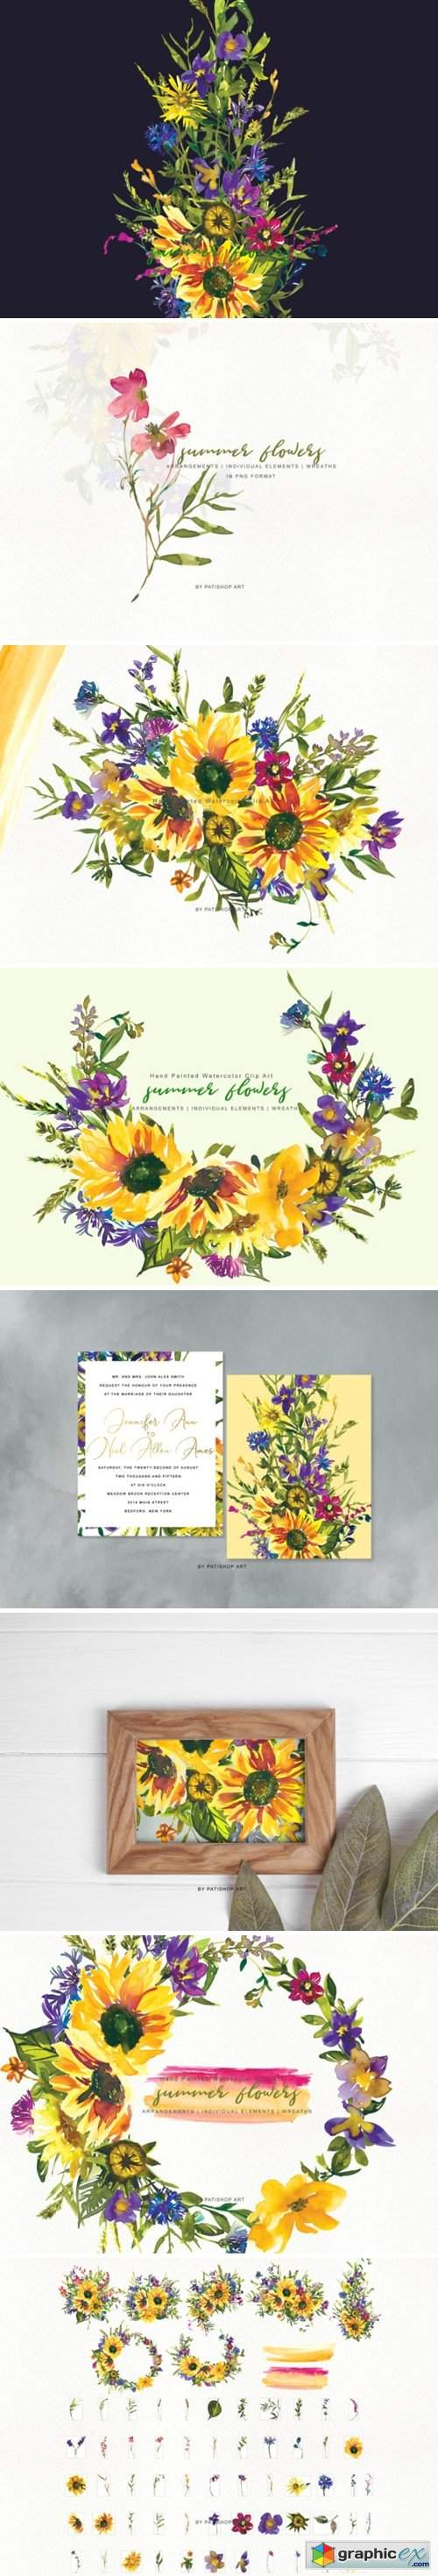 Watercolor Sunflower Wildflower Clipart